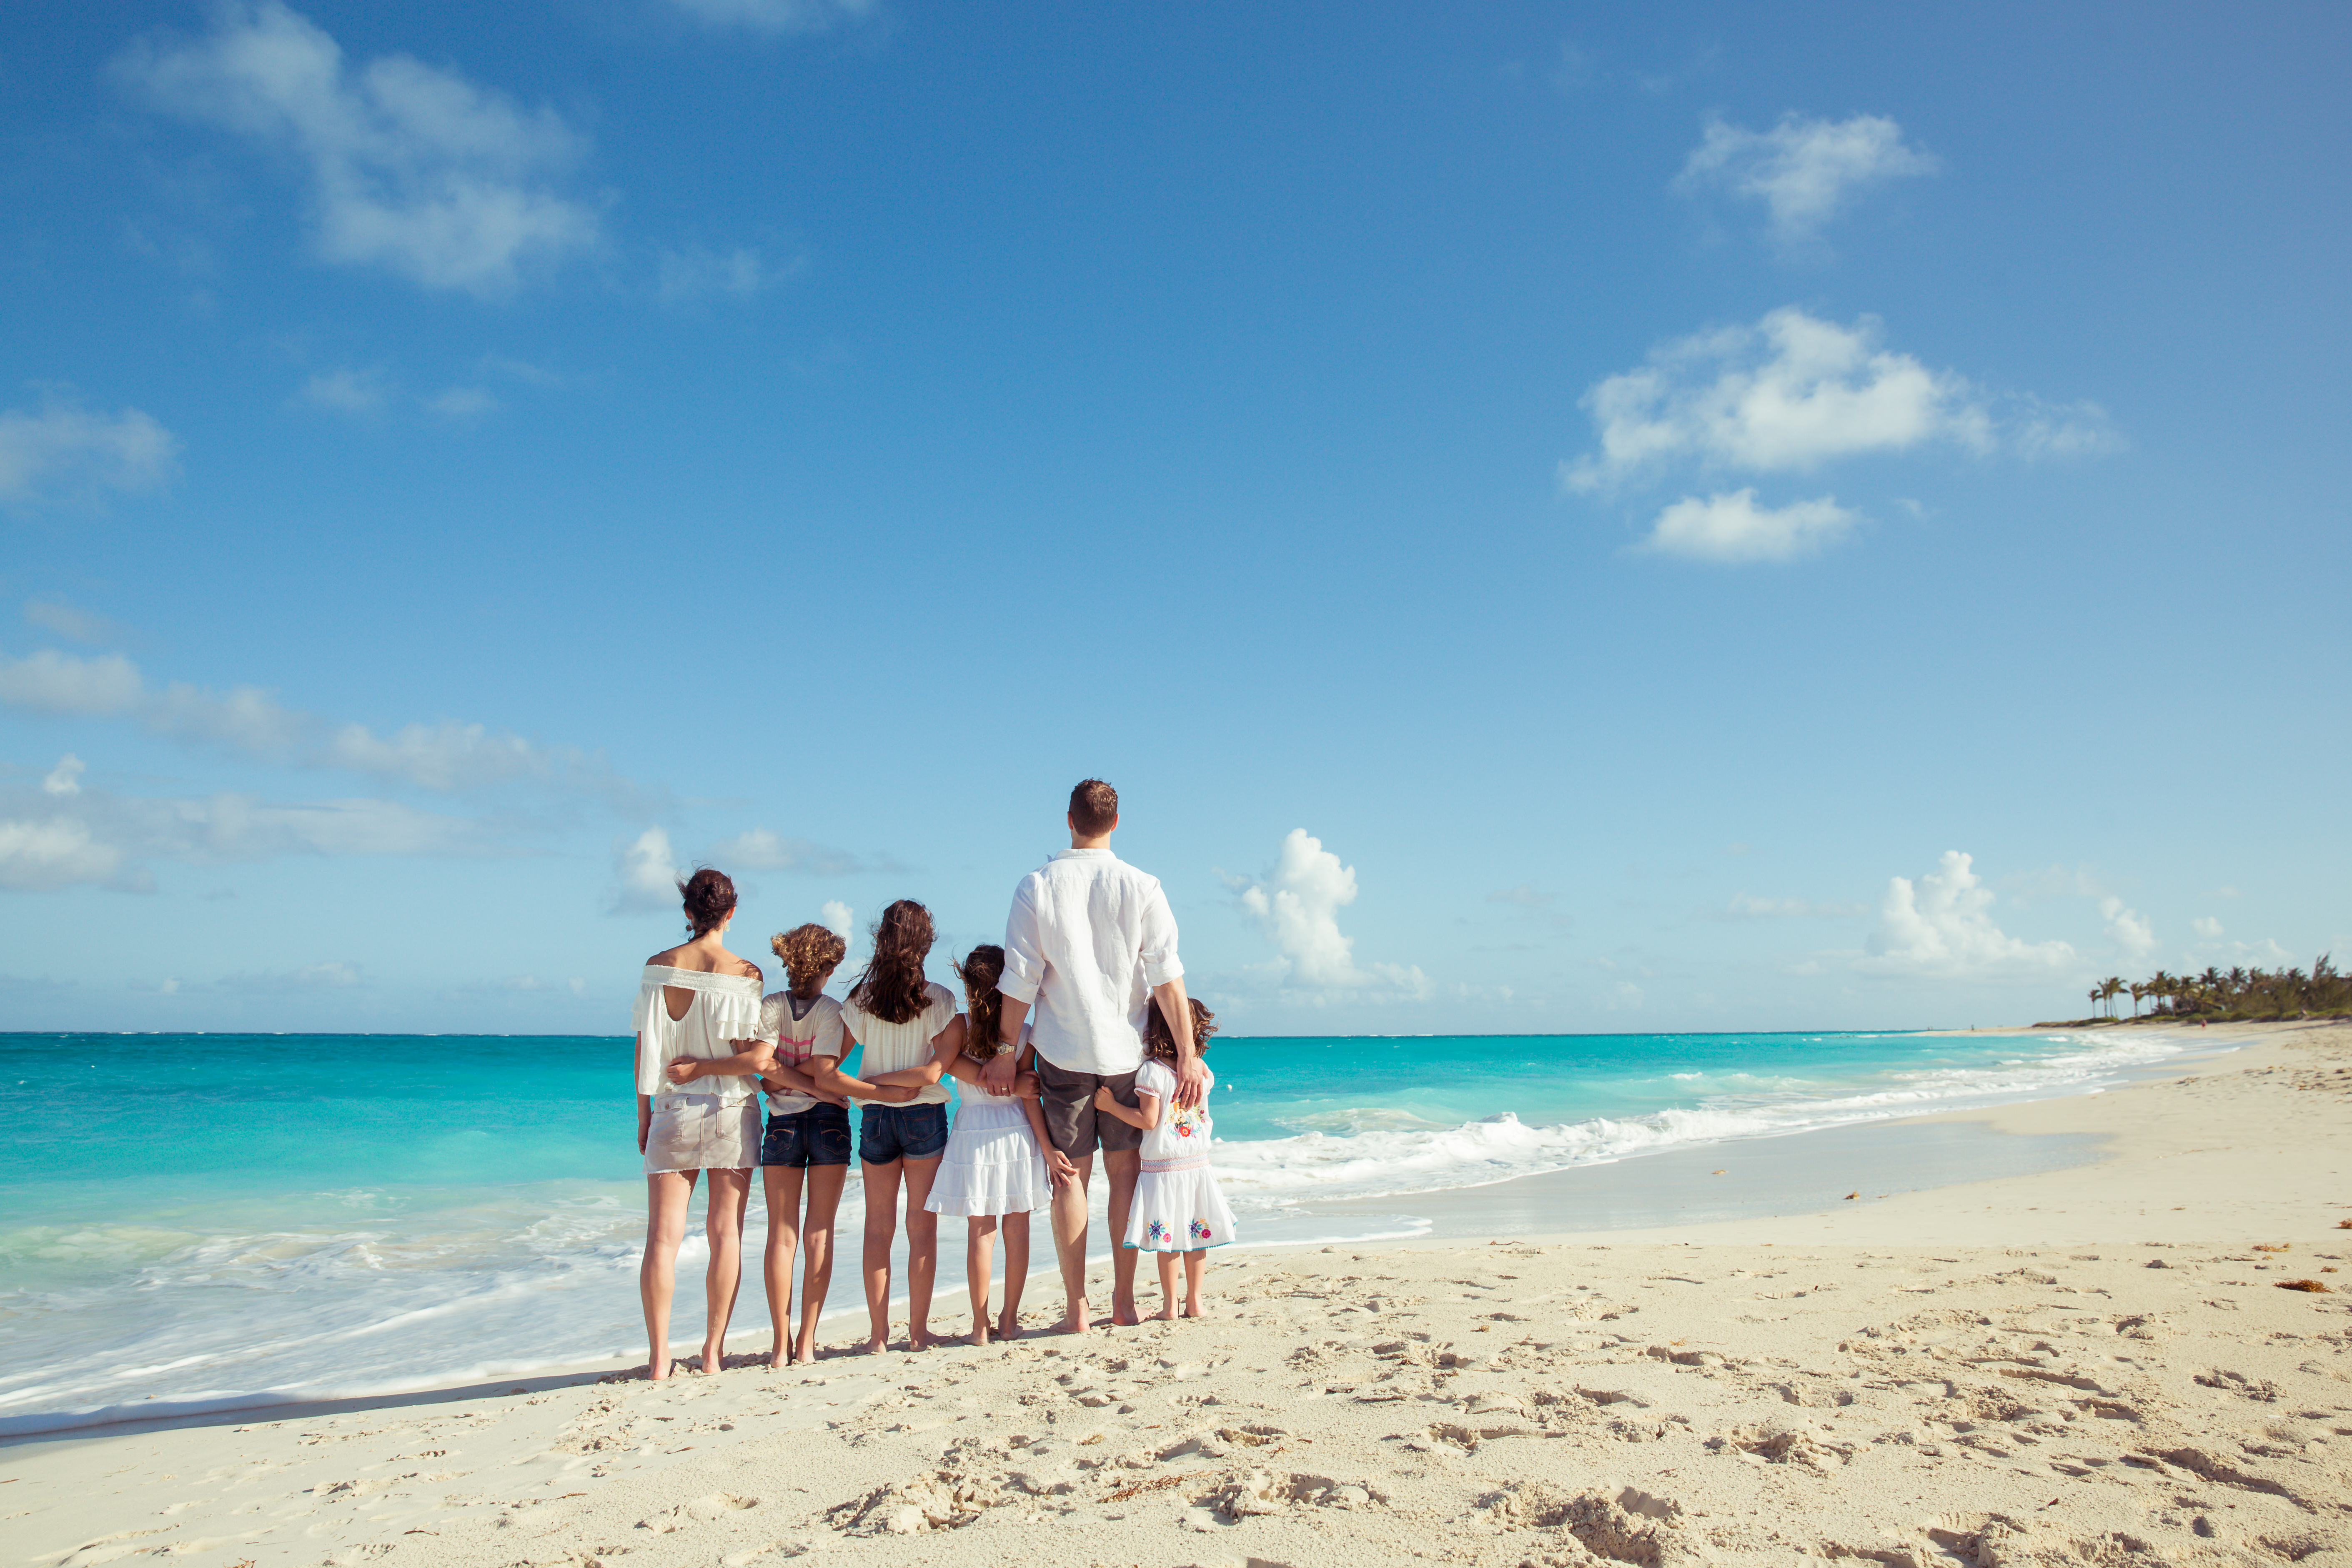 How Do You Want To Spend Your Winter In Paradise?